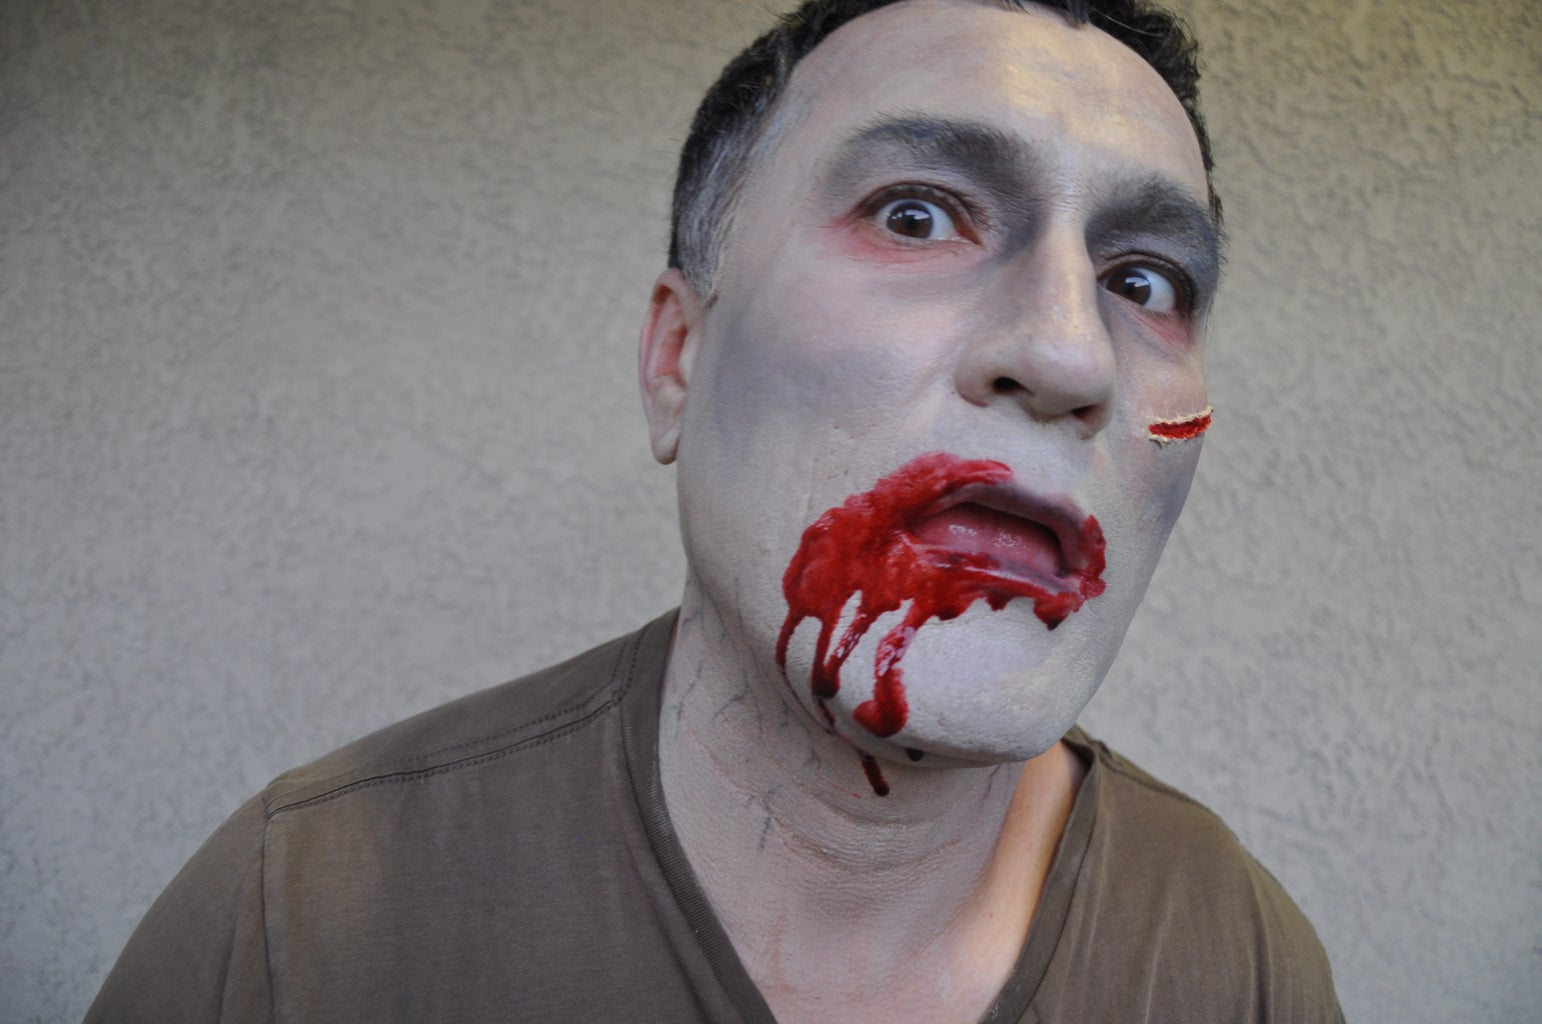 Part 2 - the Zombie: Blood!!!